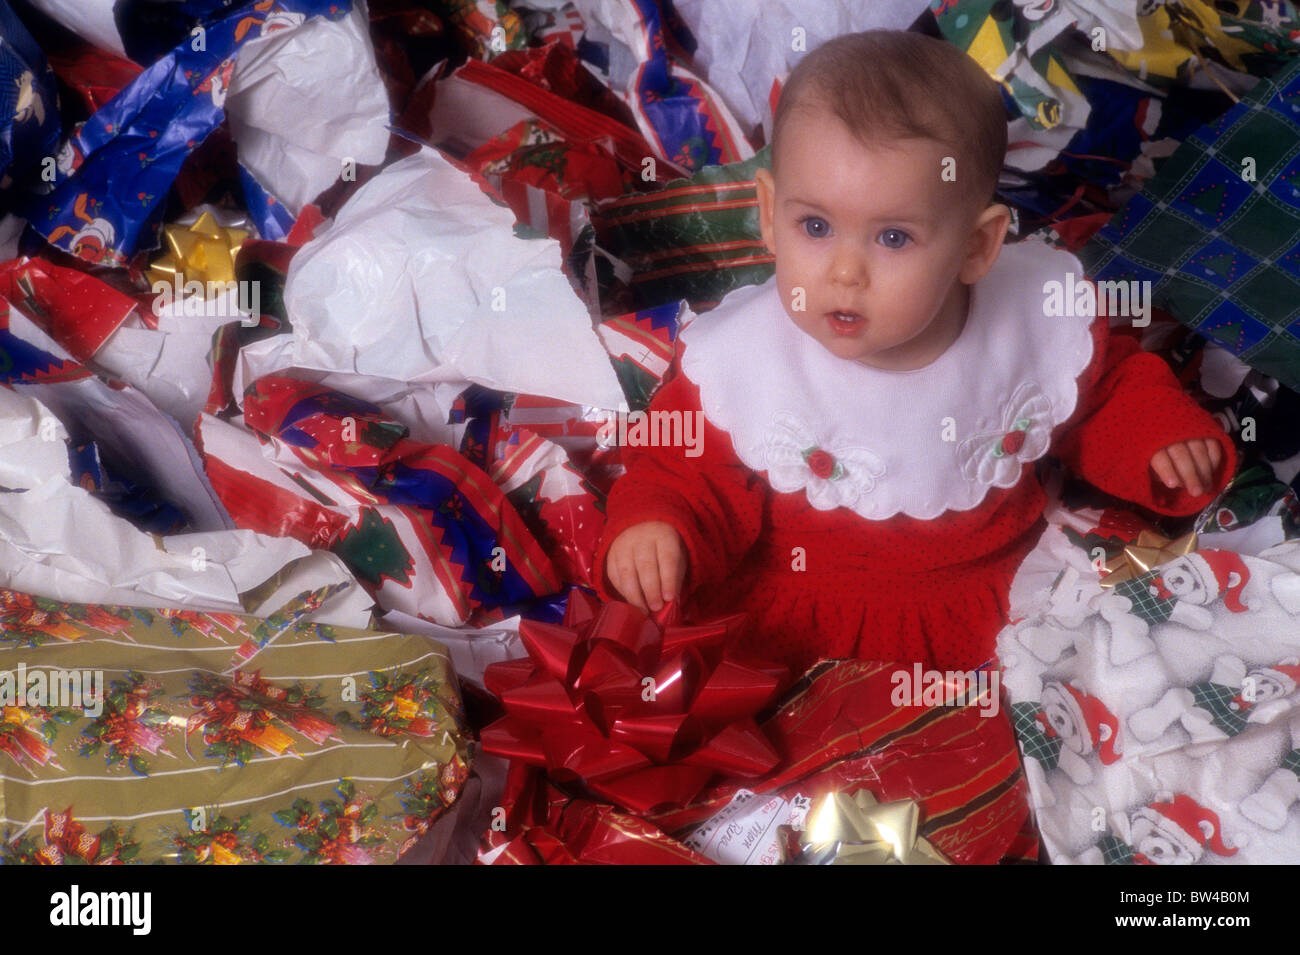 Baby\'s first Christmas playing in wrapping paper after Christmas ...